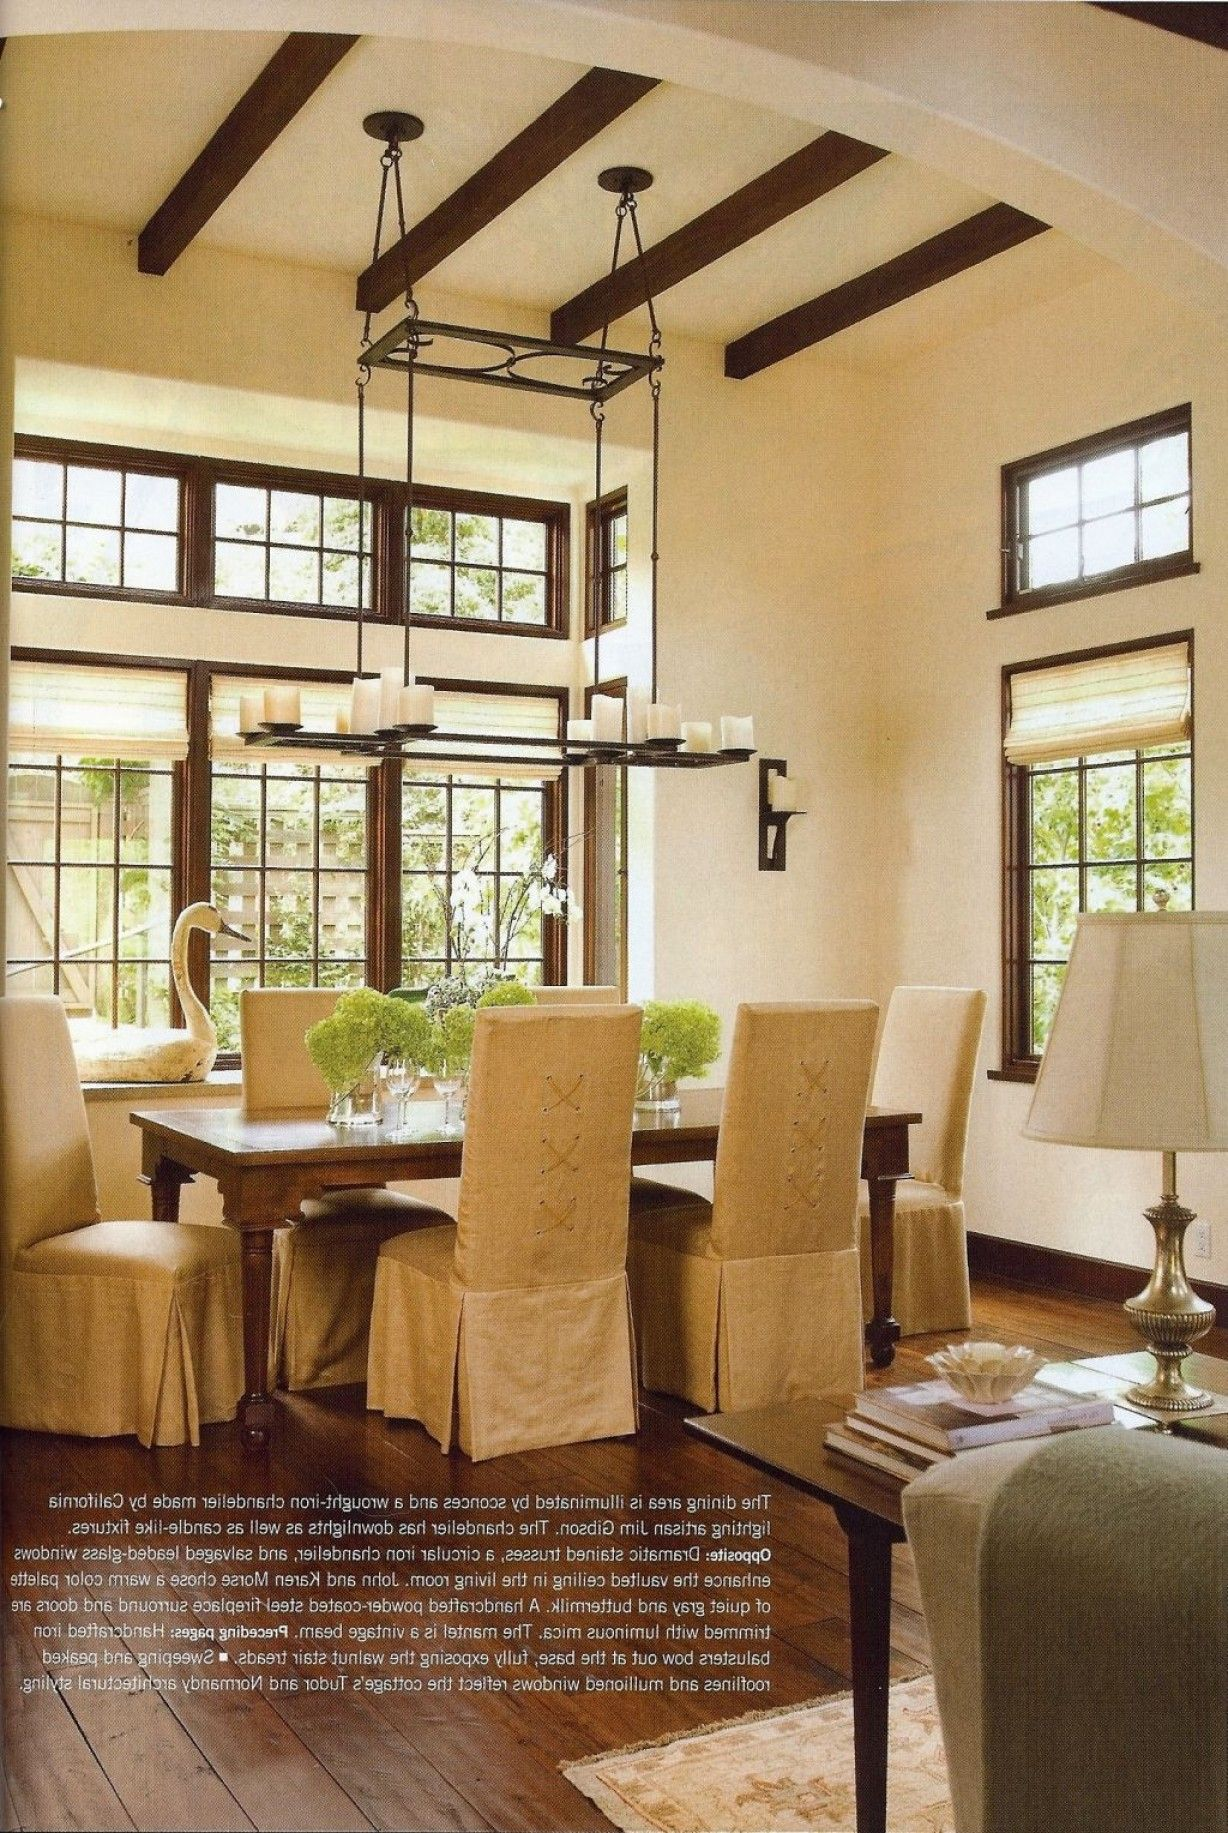 Tudor Style Homes Interior Tudor Style Furniture With Sofa And Round Wooden Table Complete Best Tudor Hom Country House Interior Tudor Decor Archways In Homes